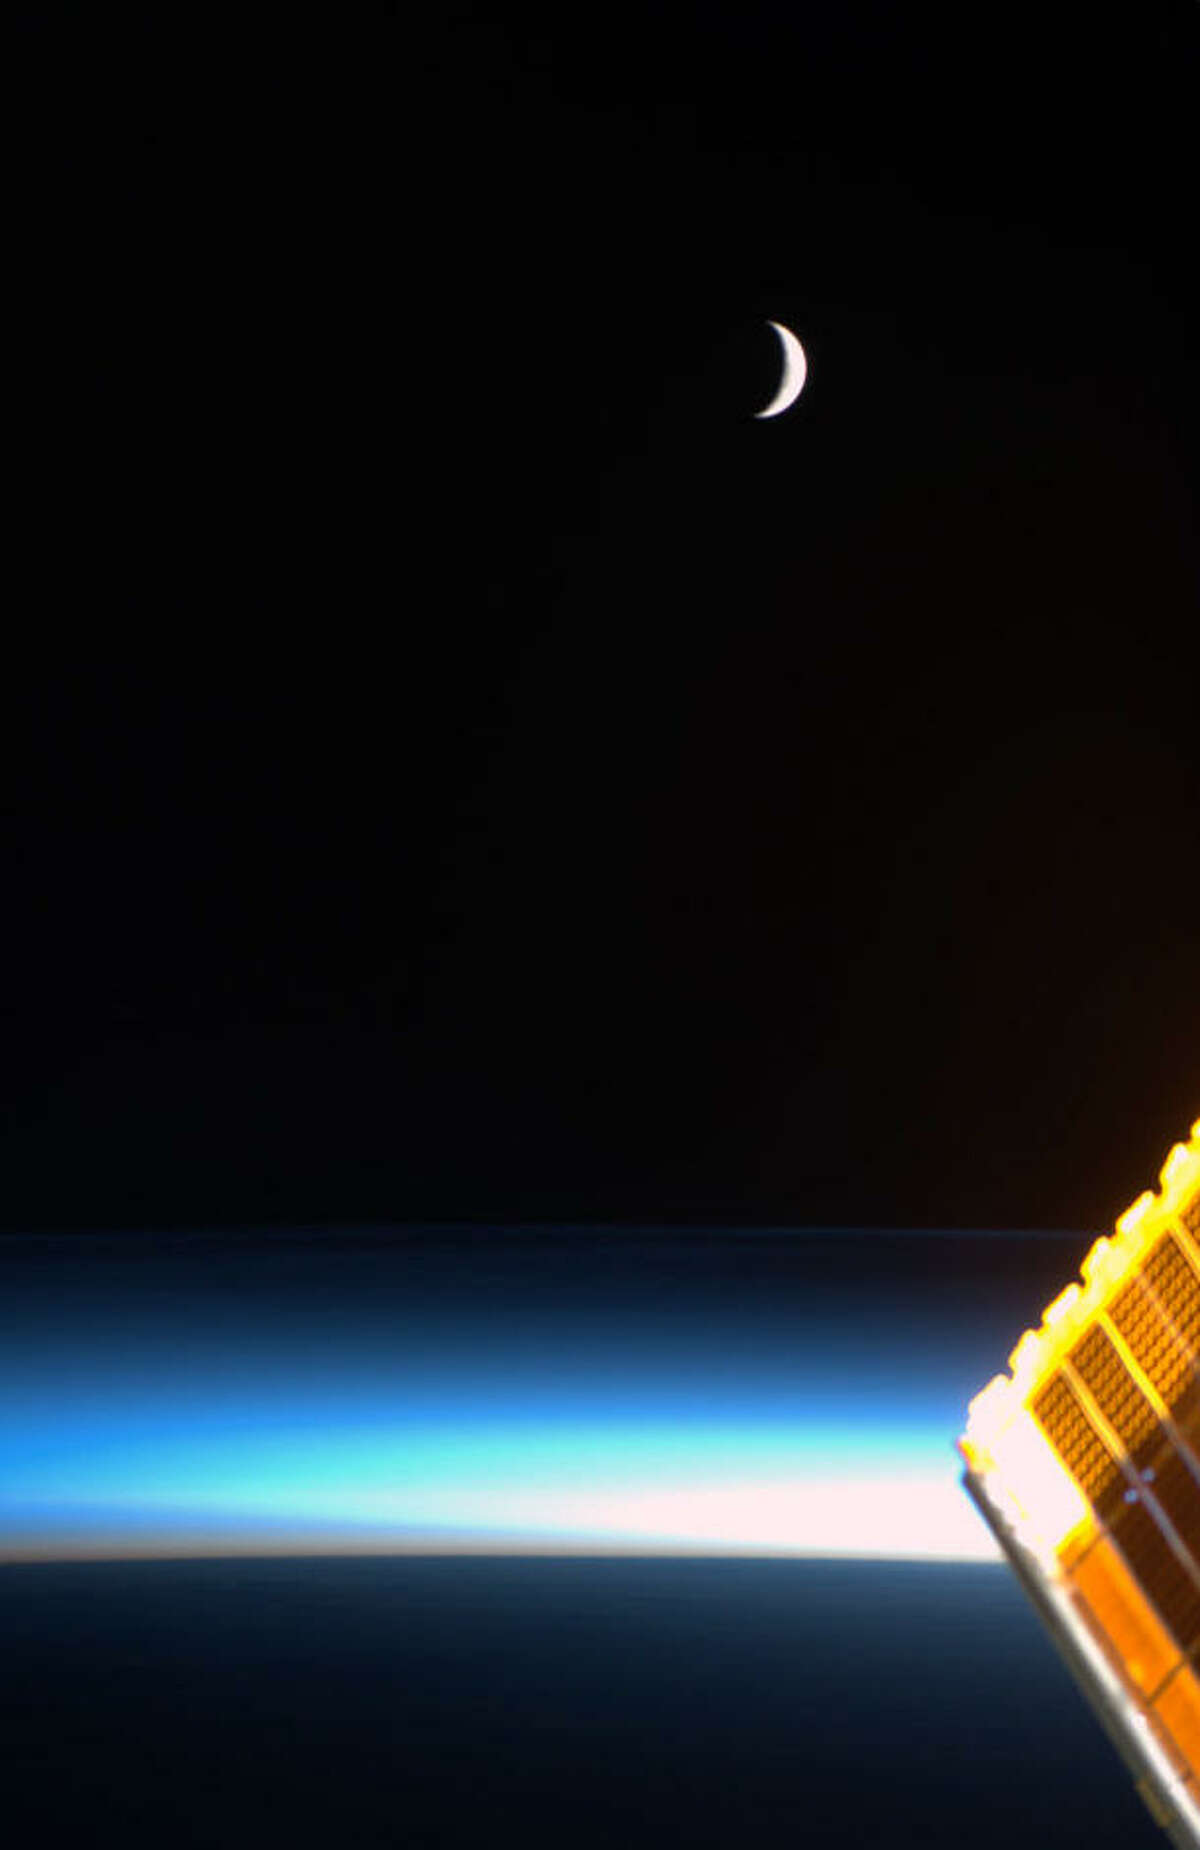 Hadfield says this photo shows the moon at sunrise, with